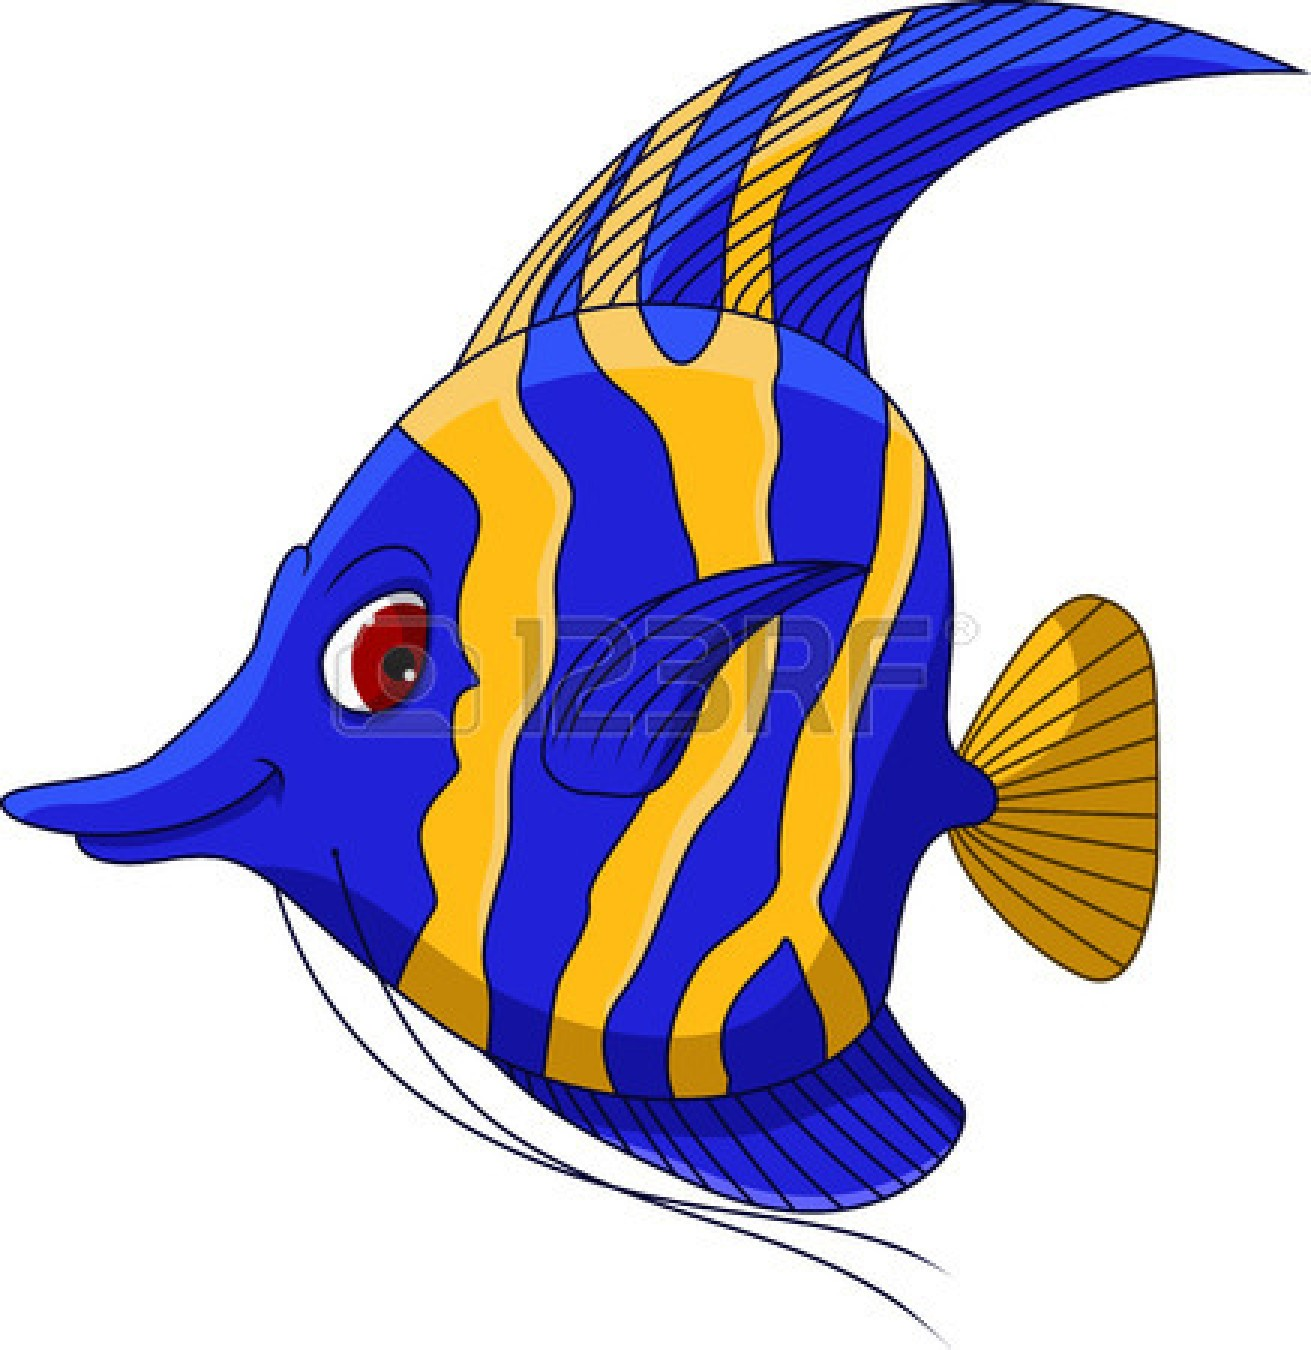 Angelfish clipart #17, Download drawings